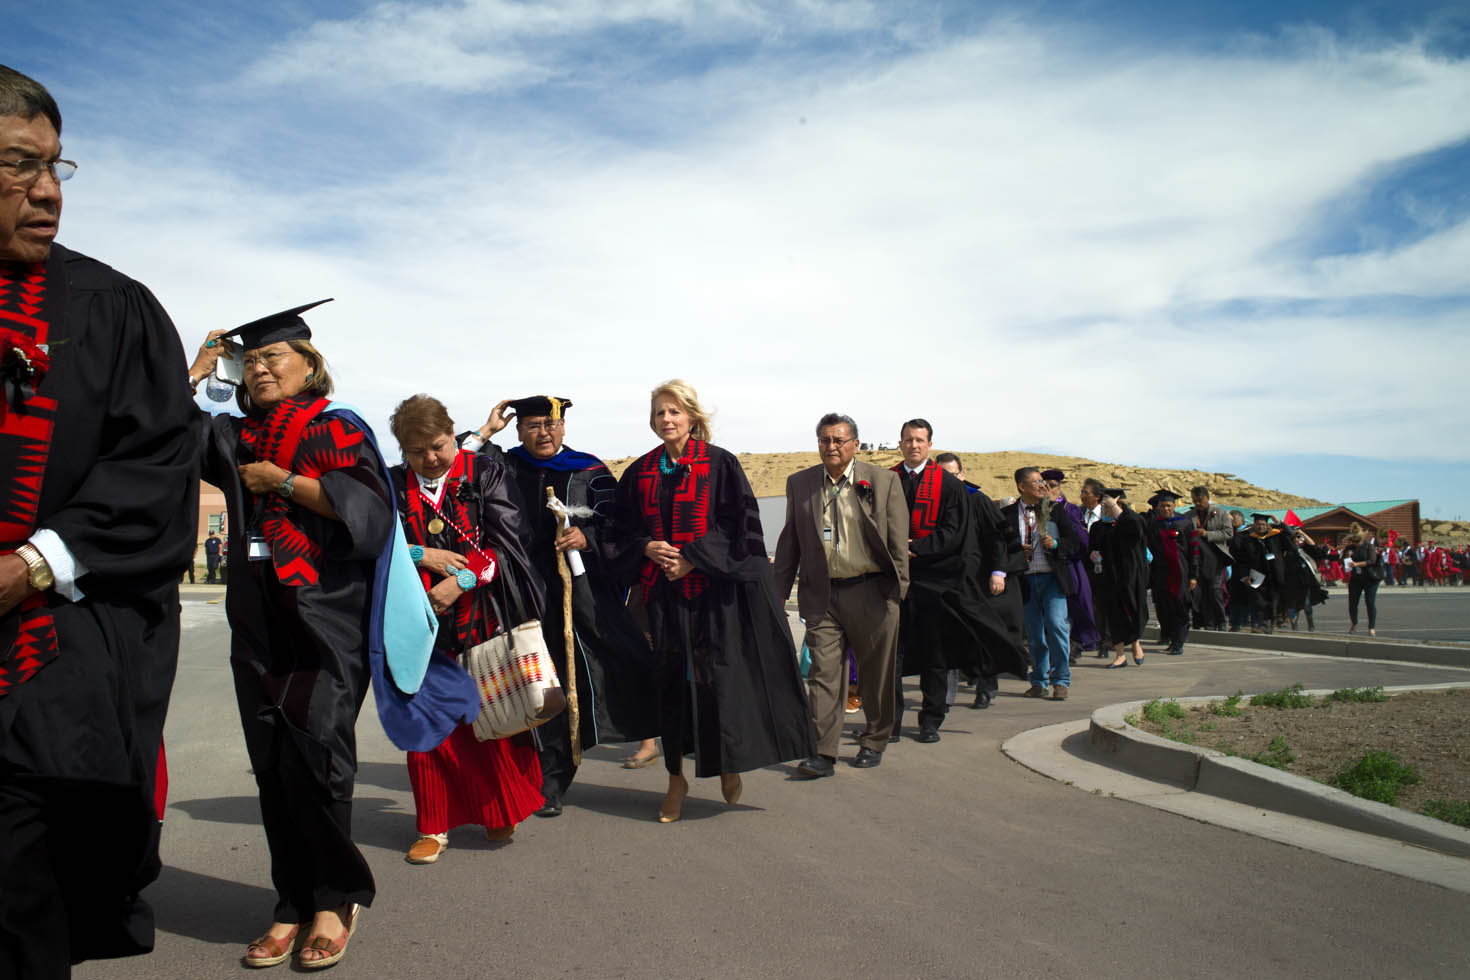 Dr. Jill Biden walks with the procession of graduates of the Navajo Technical College Class of 2013